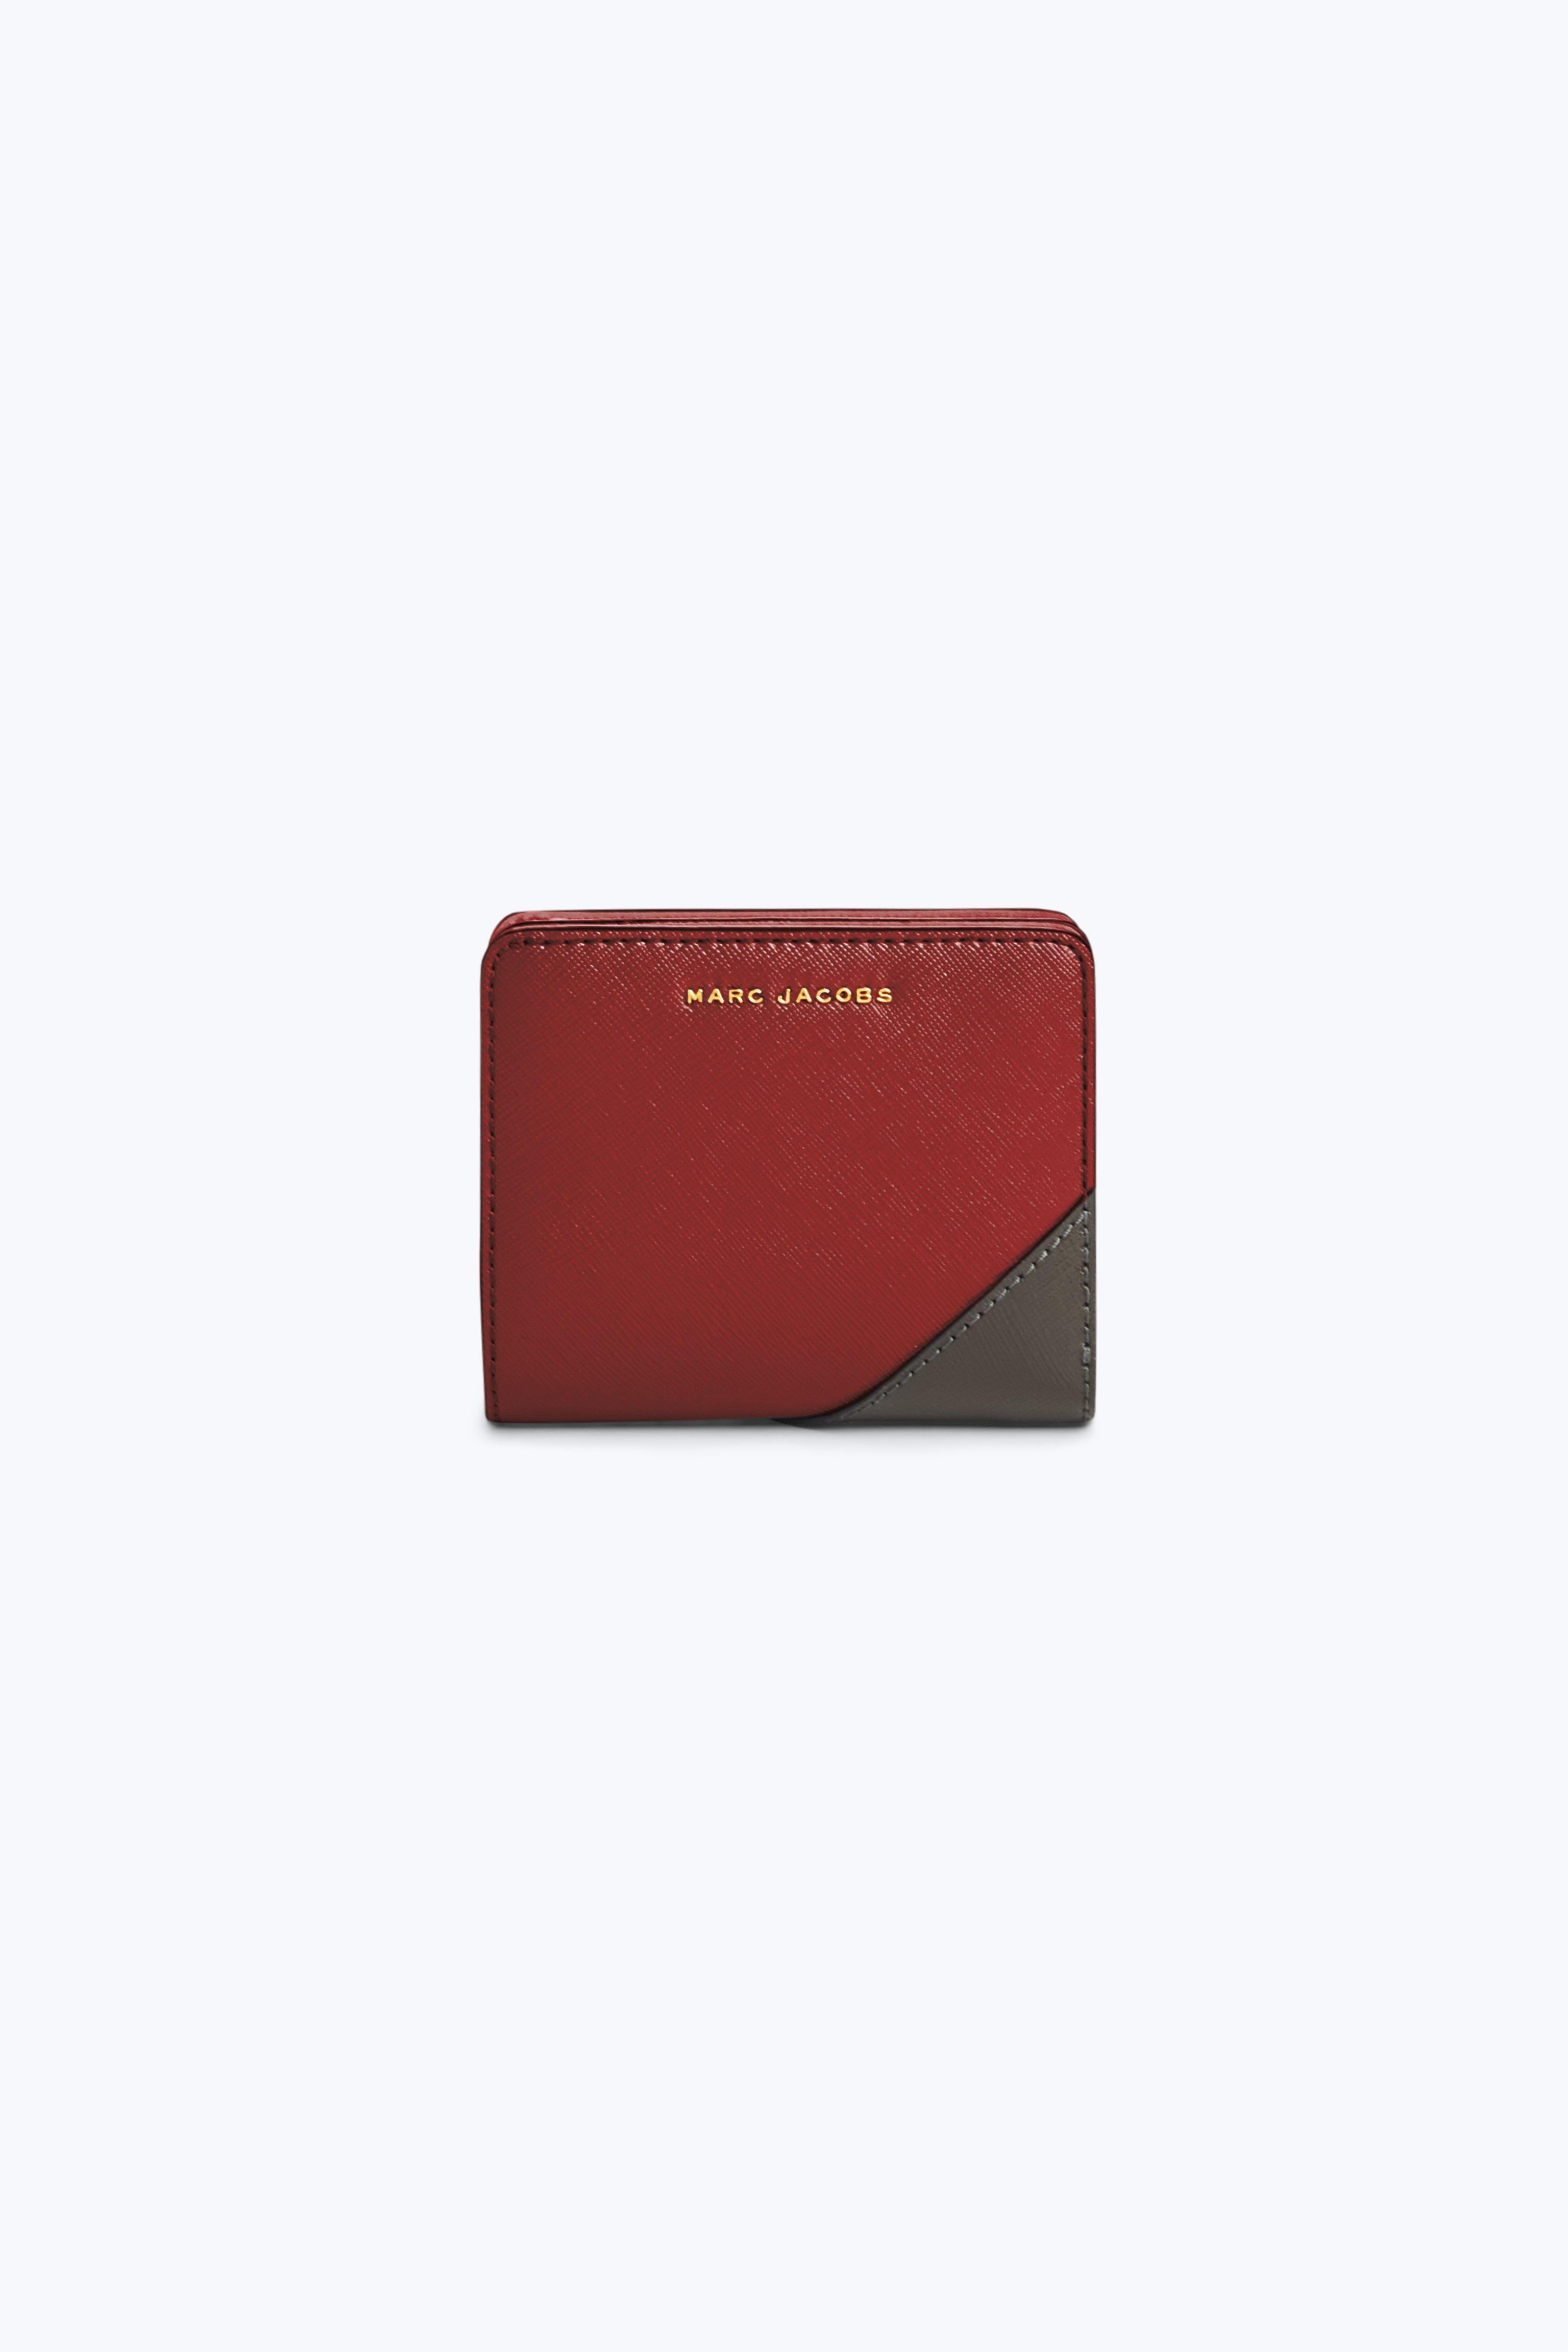 Marc Jacobs Saffiano Metal Letters Mini Compact Wallet In Deep Maroon Multi